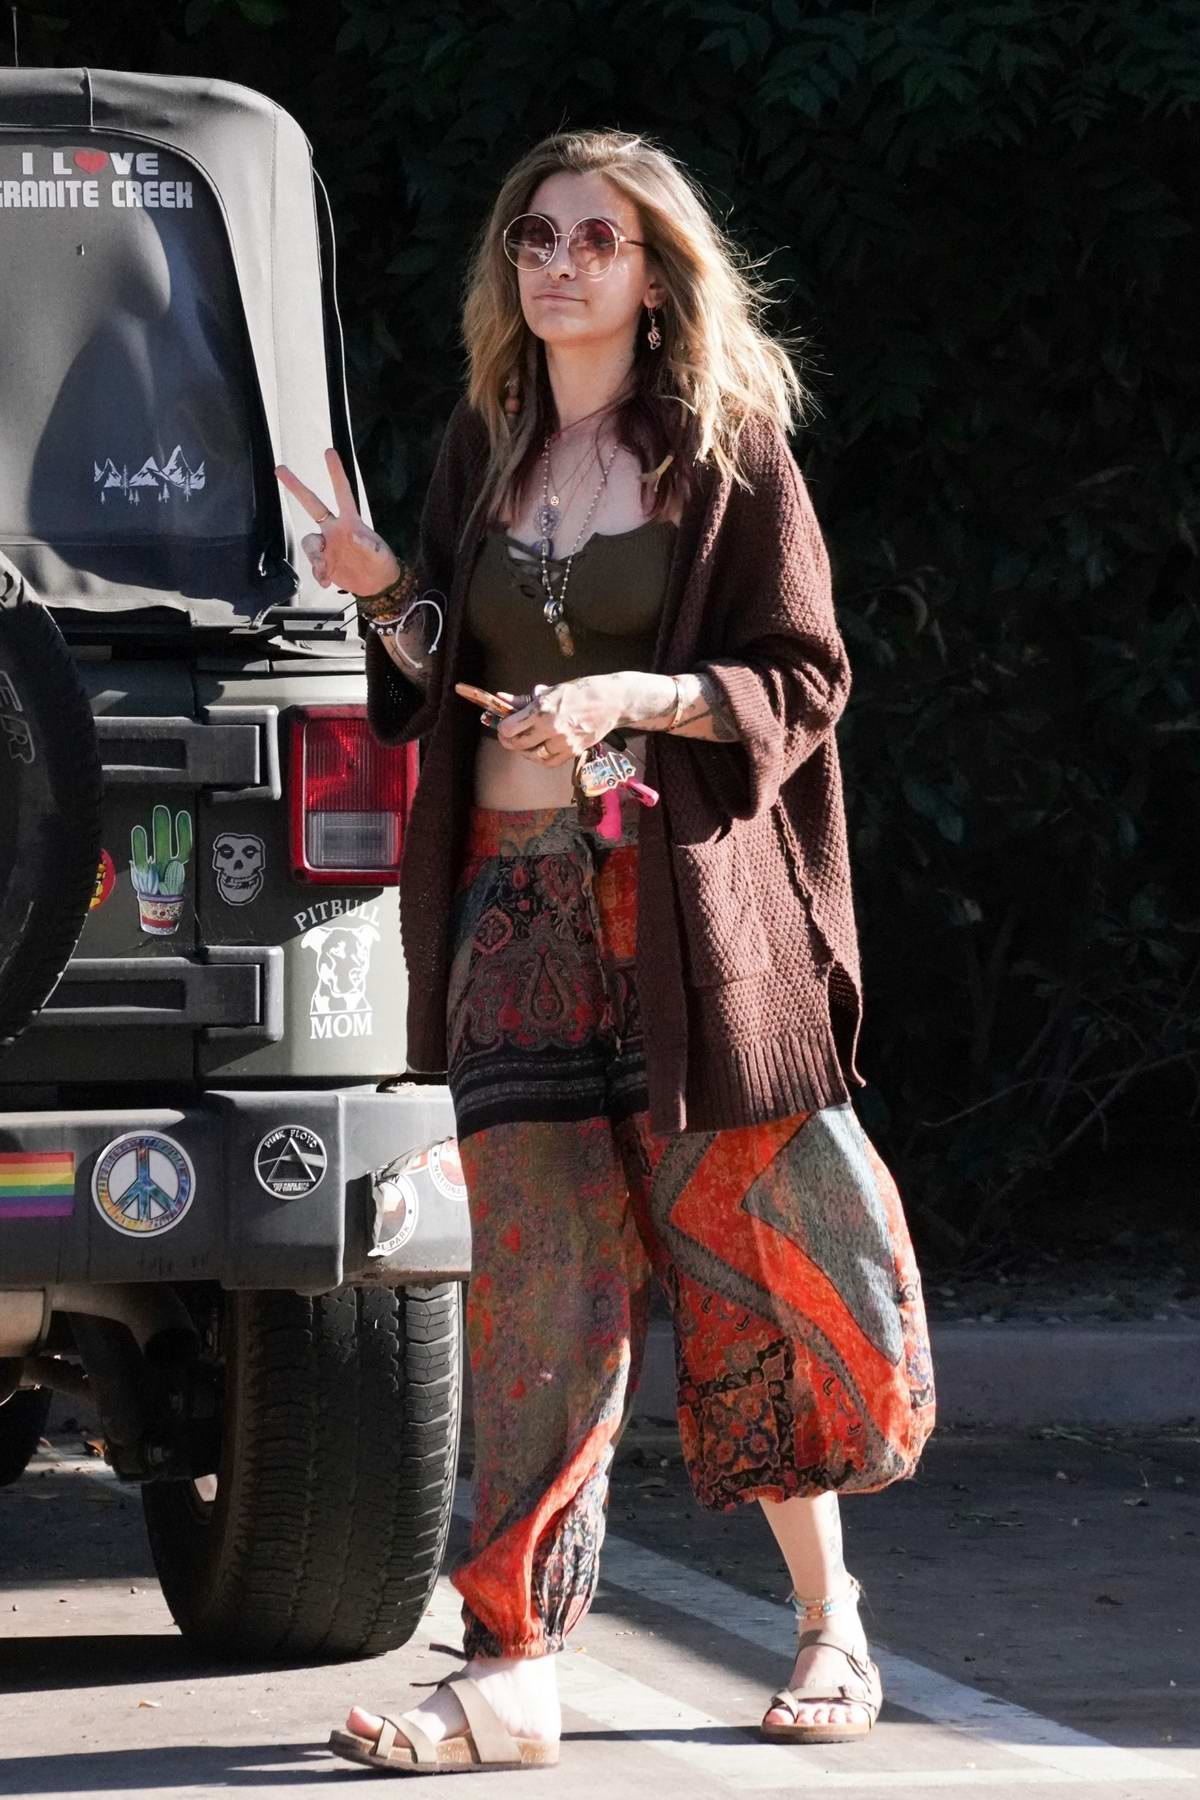 Paris Jackson flashes the peach sign while making stop at Walgreens in Sherman Oaks, California